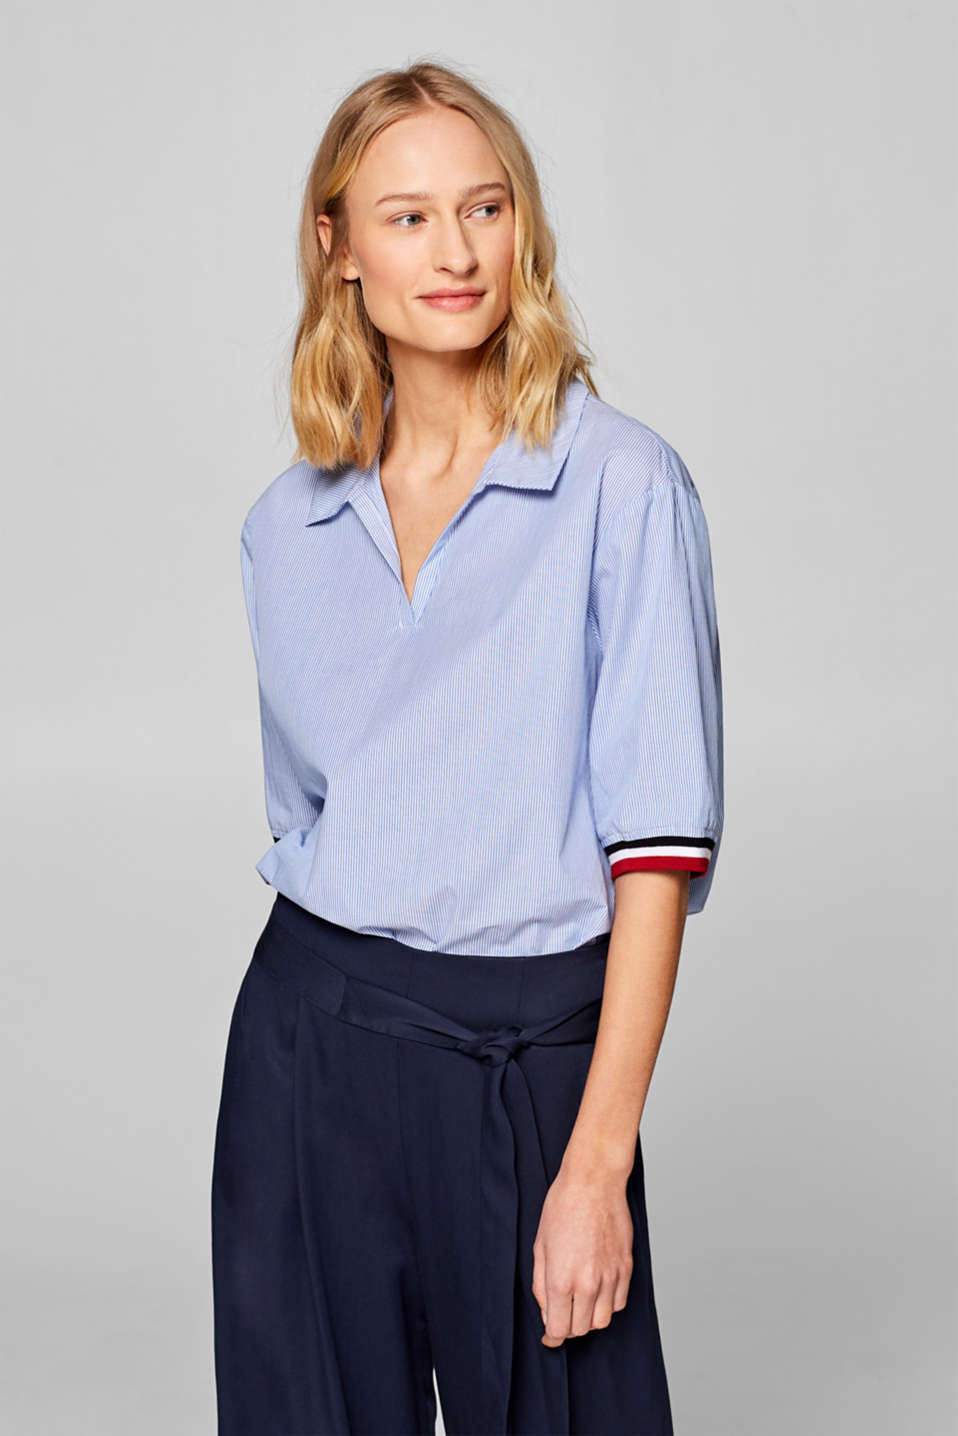 edc - Blouse with a polo shirt details, 100% cotton